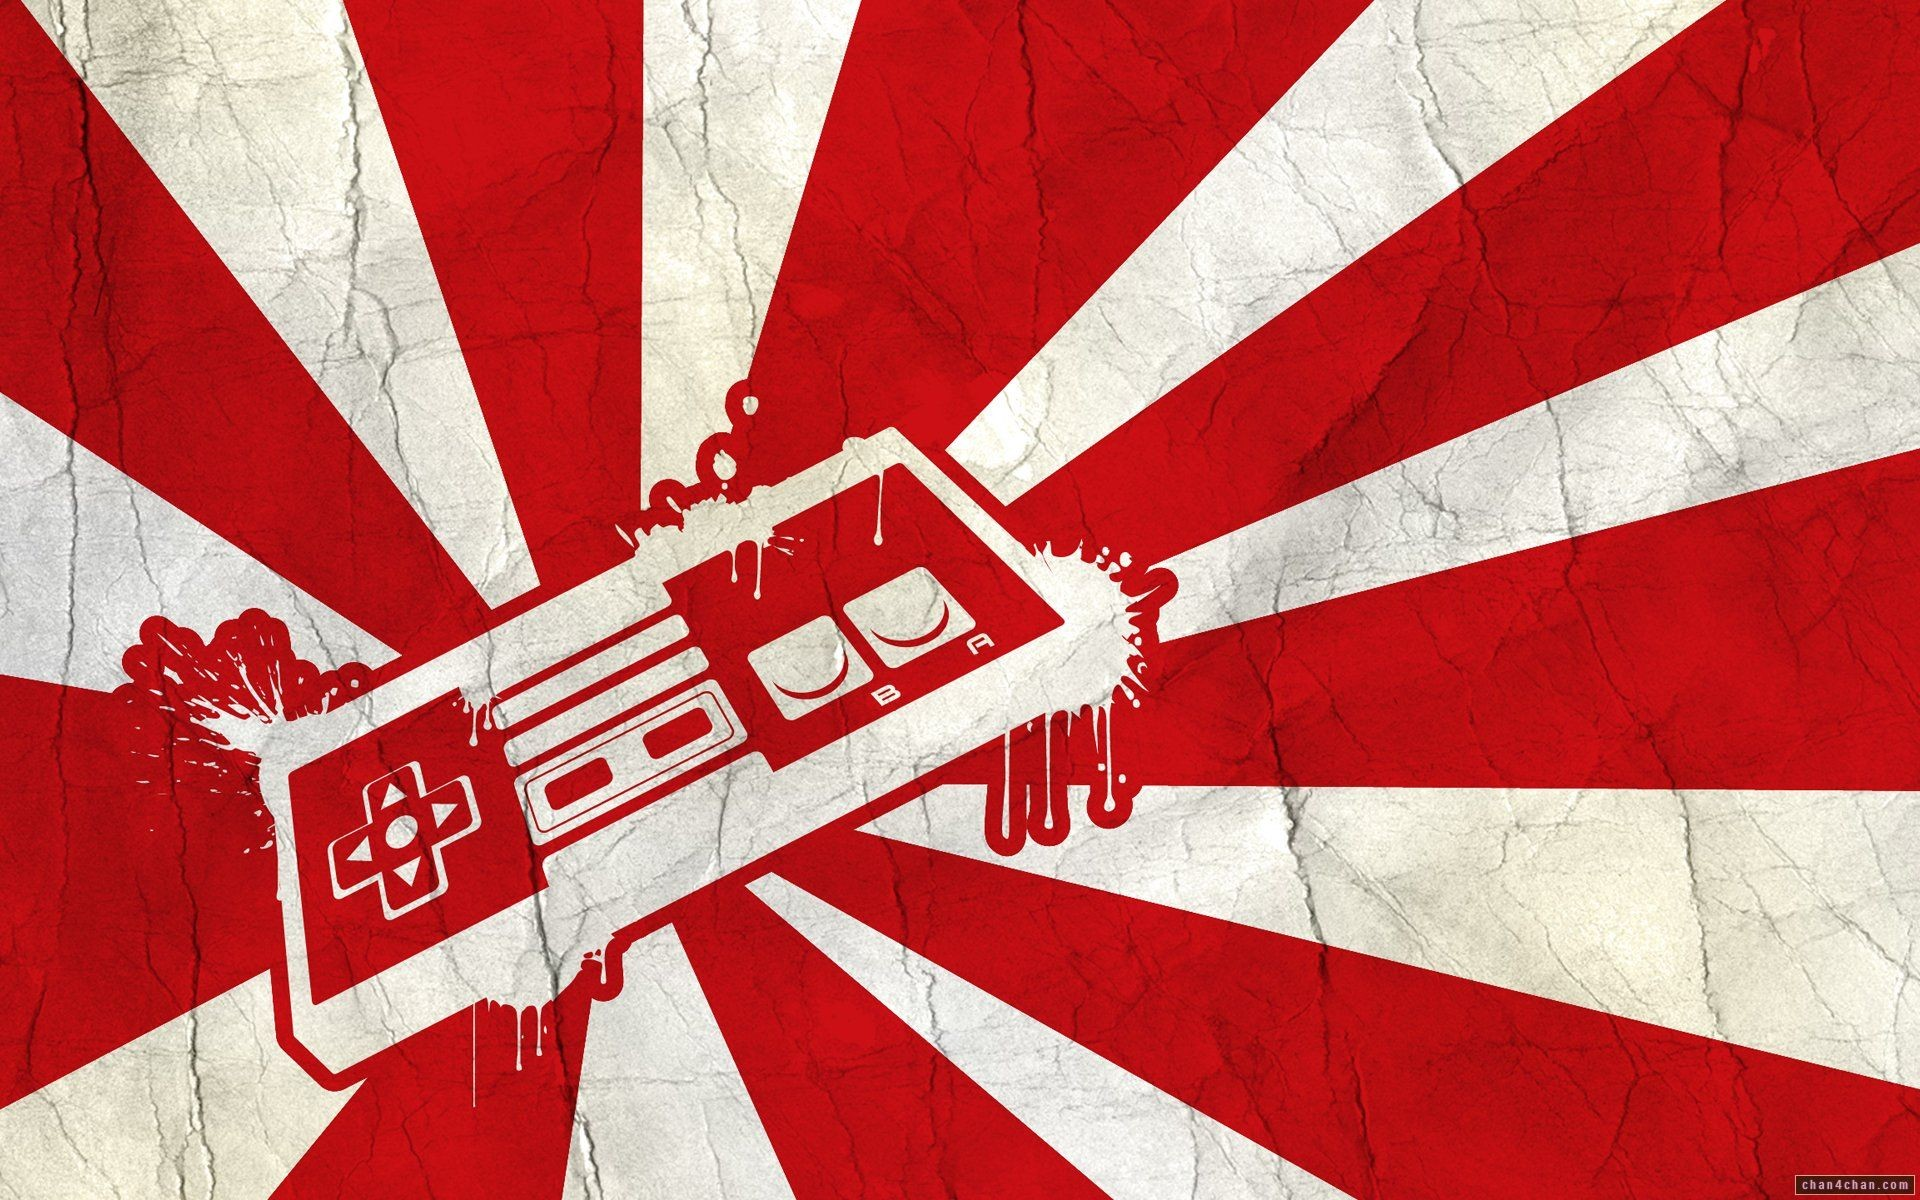 Res: 1920x1200, Japan Street Culture images Gaming Culture HD wallpaper and background  photos